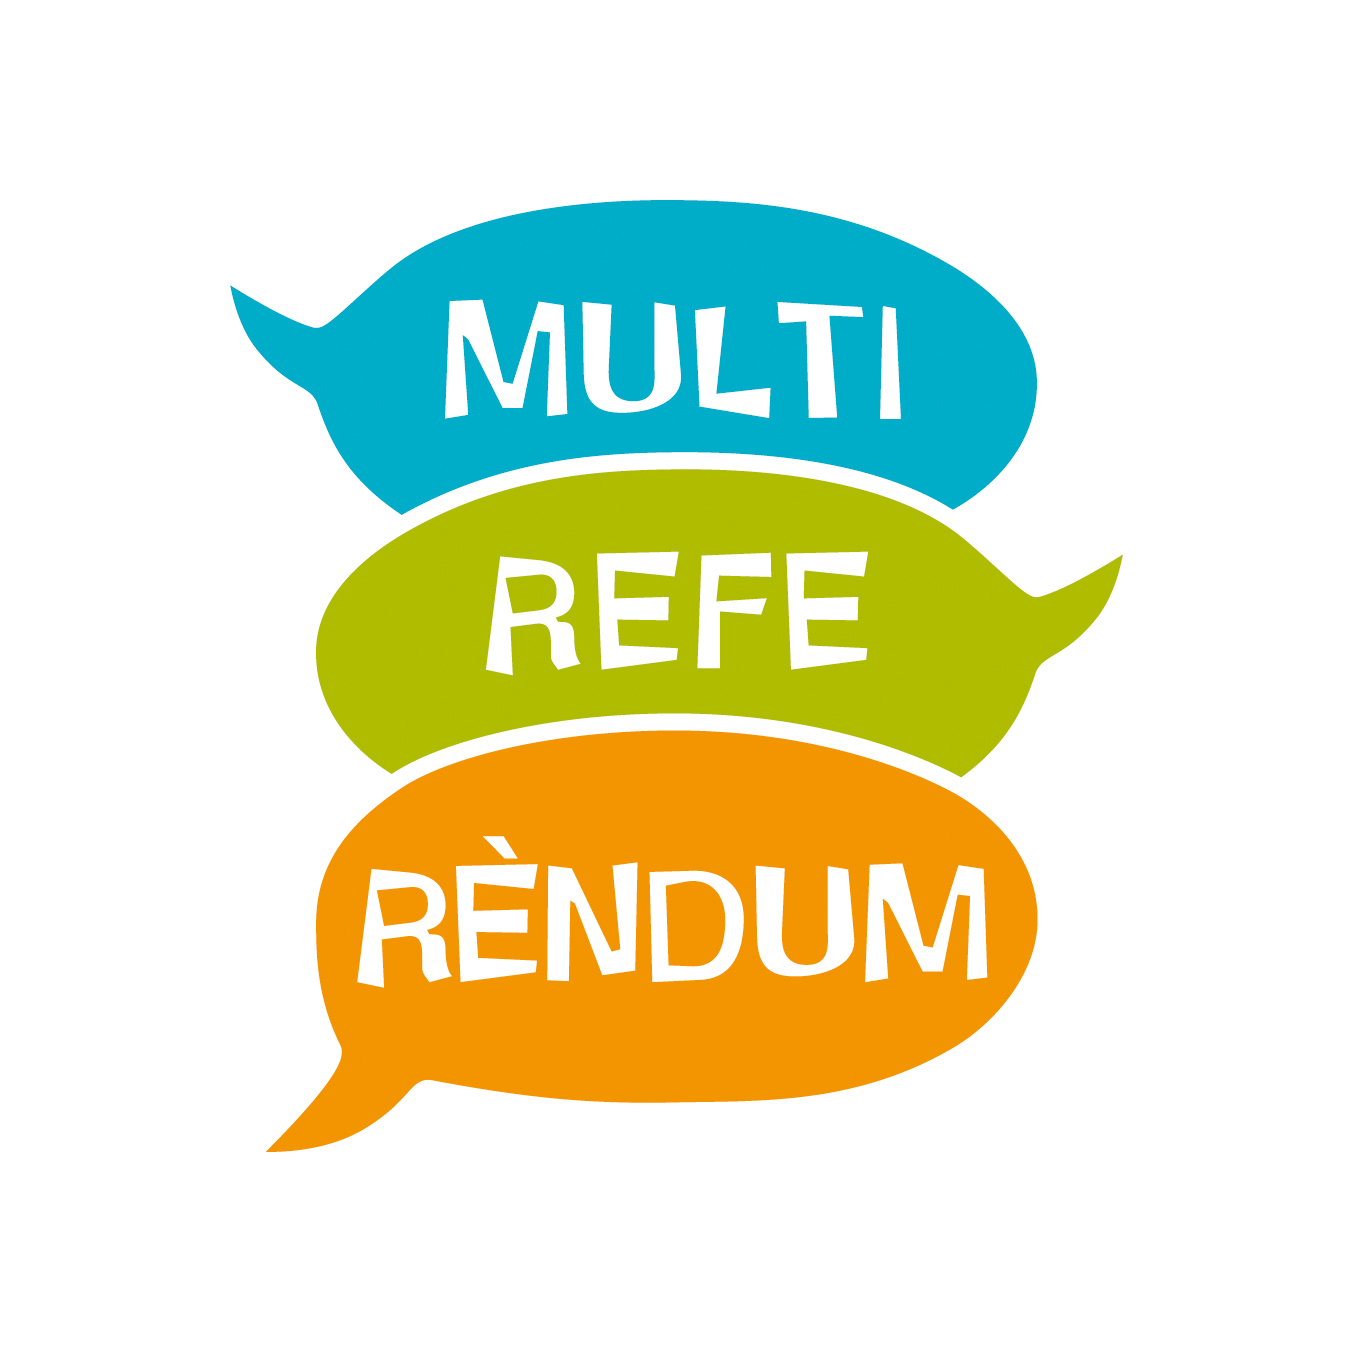 https://i2.wp.com/www.multireferendum.cat/wp-content/uploads/2014/03/LOGO_RGB.jpg